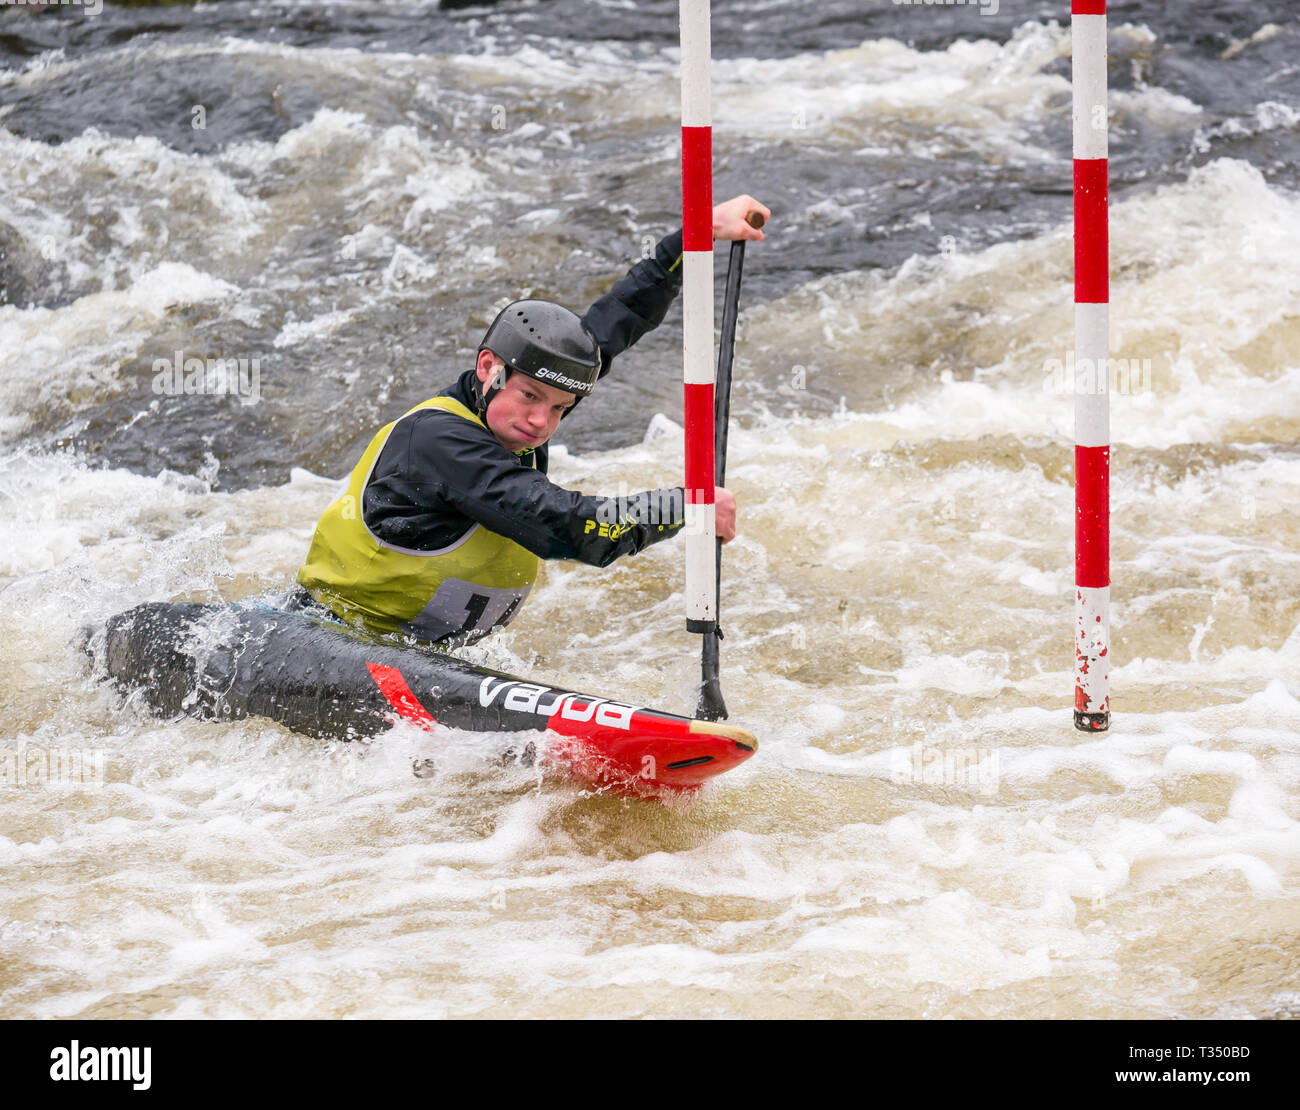 Grandtully, Perthshire, Scotland, United Kingdom, 6 April 2019. Grandtully Premier Canoe Slalom:  Robert Fernie from Holme Pierrepoint canoe club competes in the men's premier Canadian canoe  on the River Tay - Stock Image